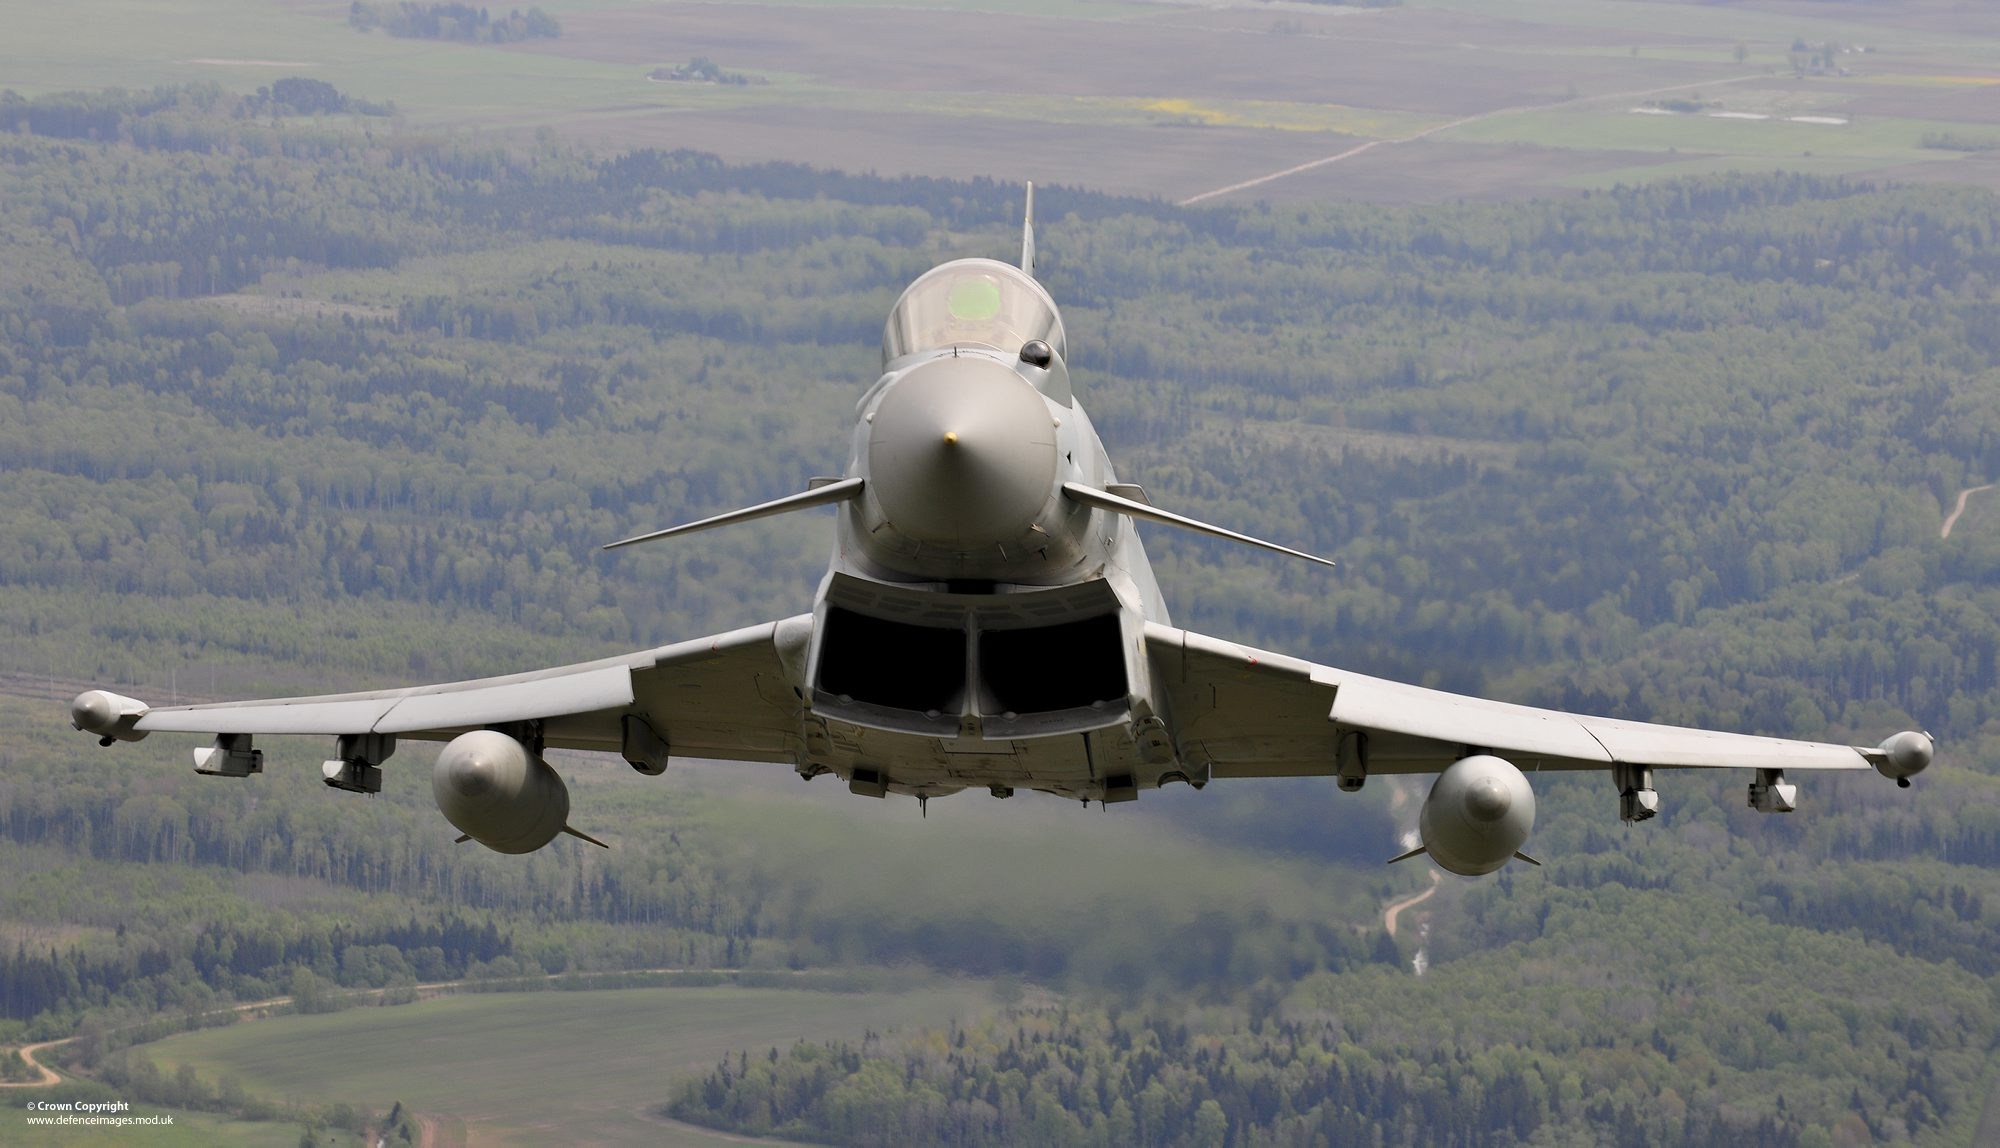 A British RAF aircraft over Lithuania, in the context of the NATO Baltic Air Policing (BAP) mission. NATO has increasingly engaged in Baltic security deployments since the 2014 Russian annexation of Crimea. https://flic.kr/p/nTnCME